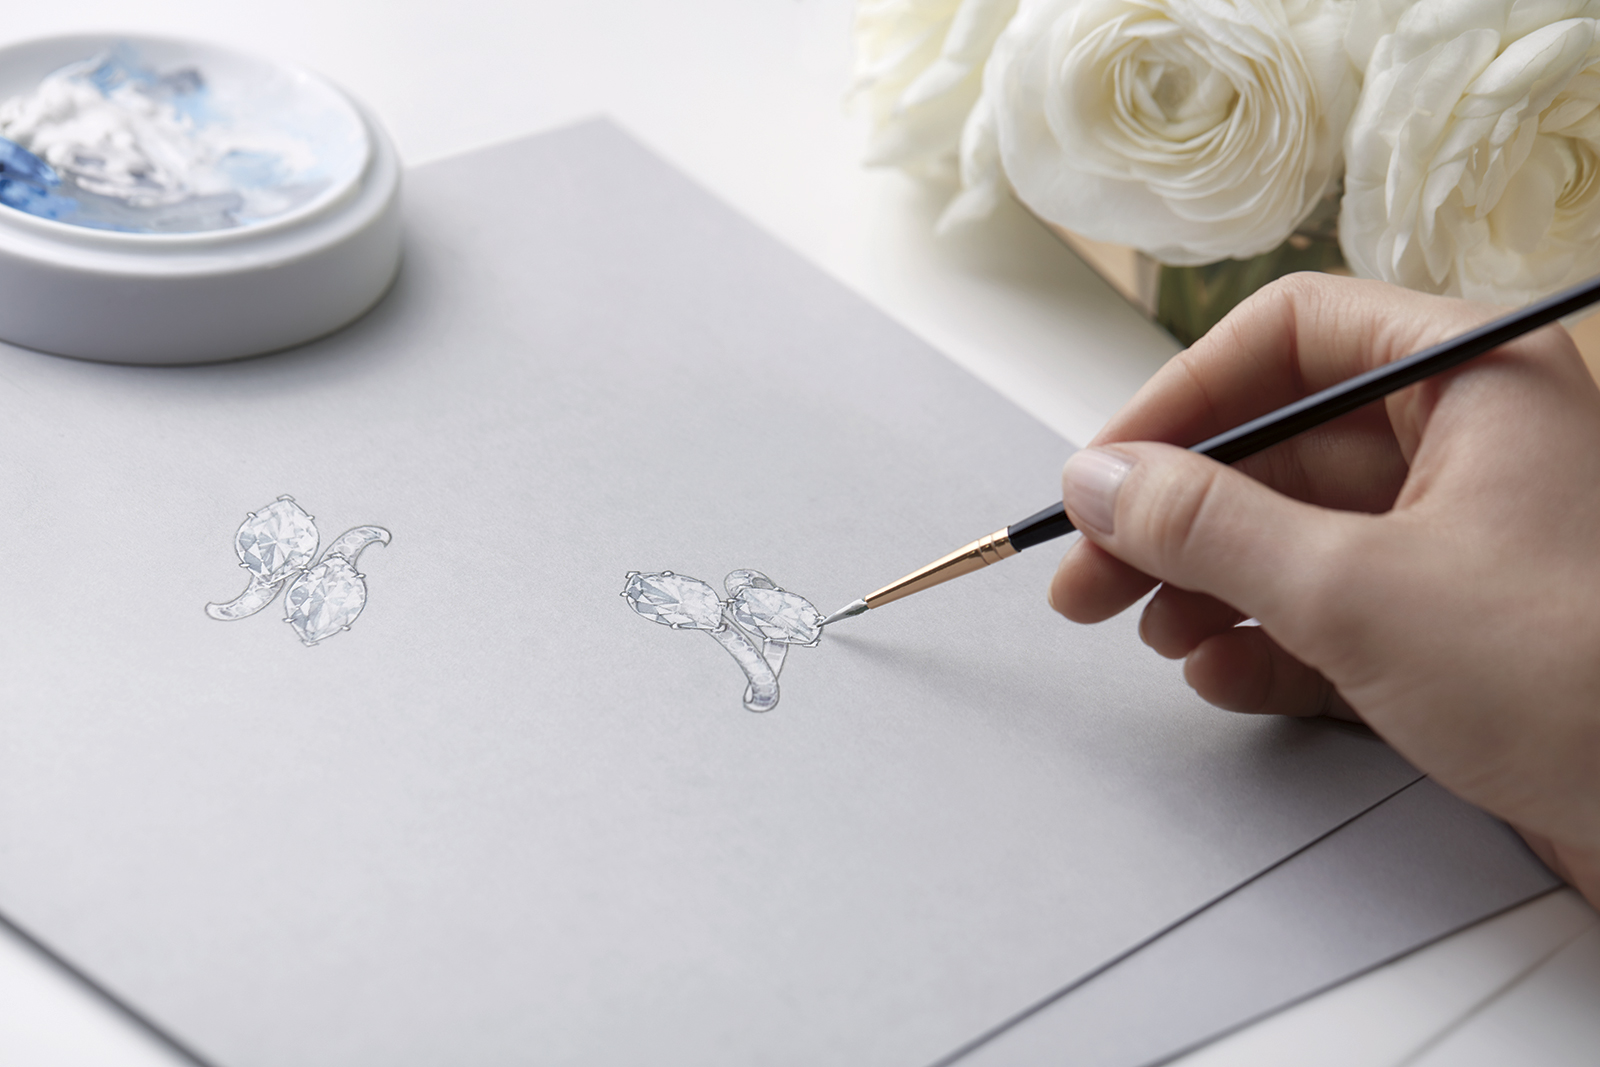 Rendering of Harry Winston 'Bridal Couture' toi et moi engagement ring with 1.51ct marquise cut diamonds in platinum